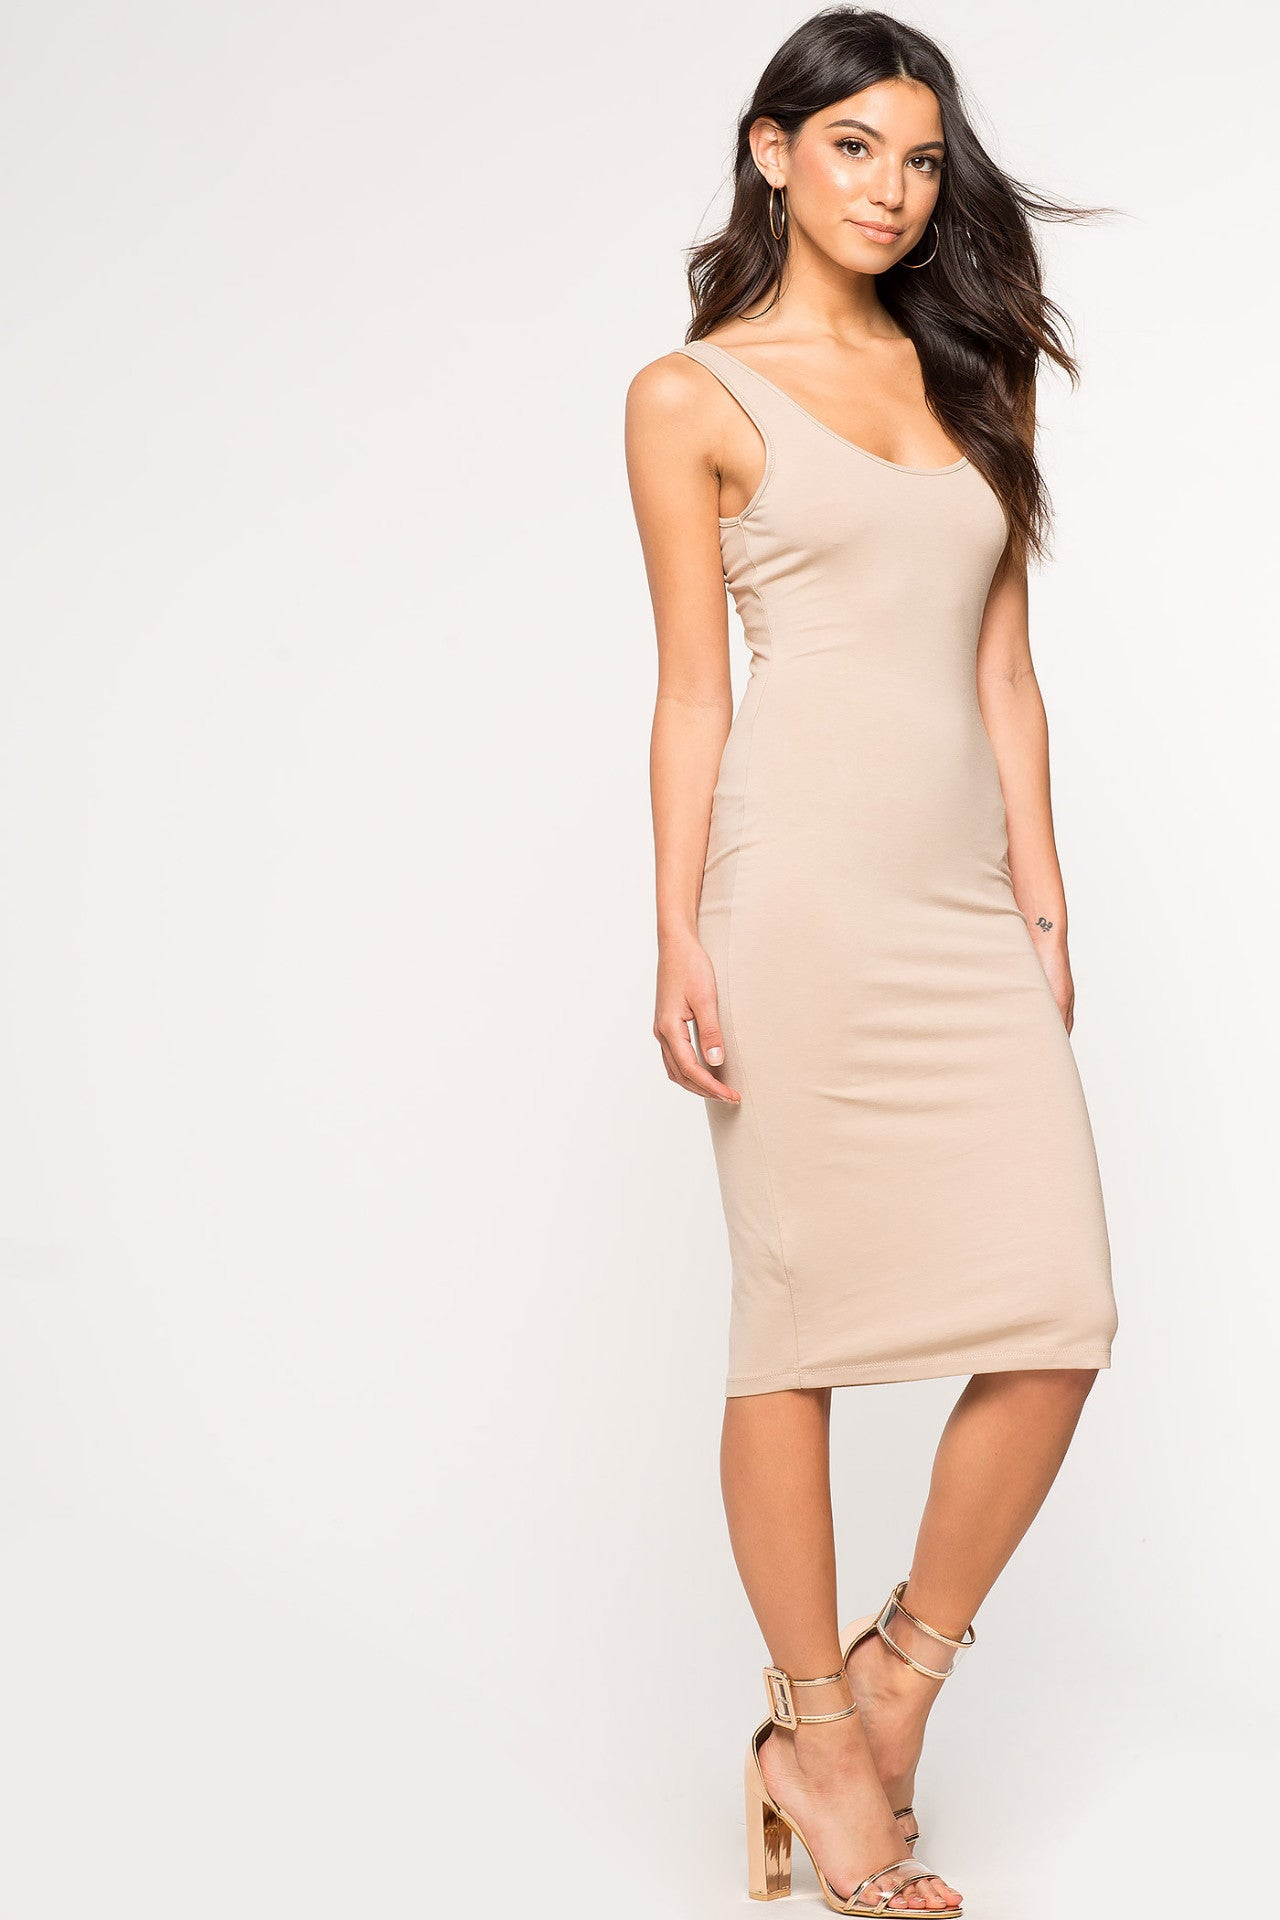 Women's sleeveless round scoop neck skinny tank jersey casual dress fitted bodycon midi sundress. Nude taupe